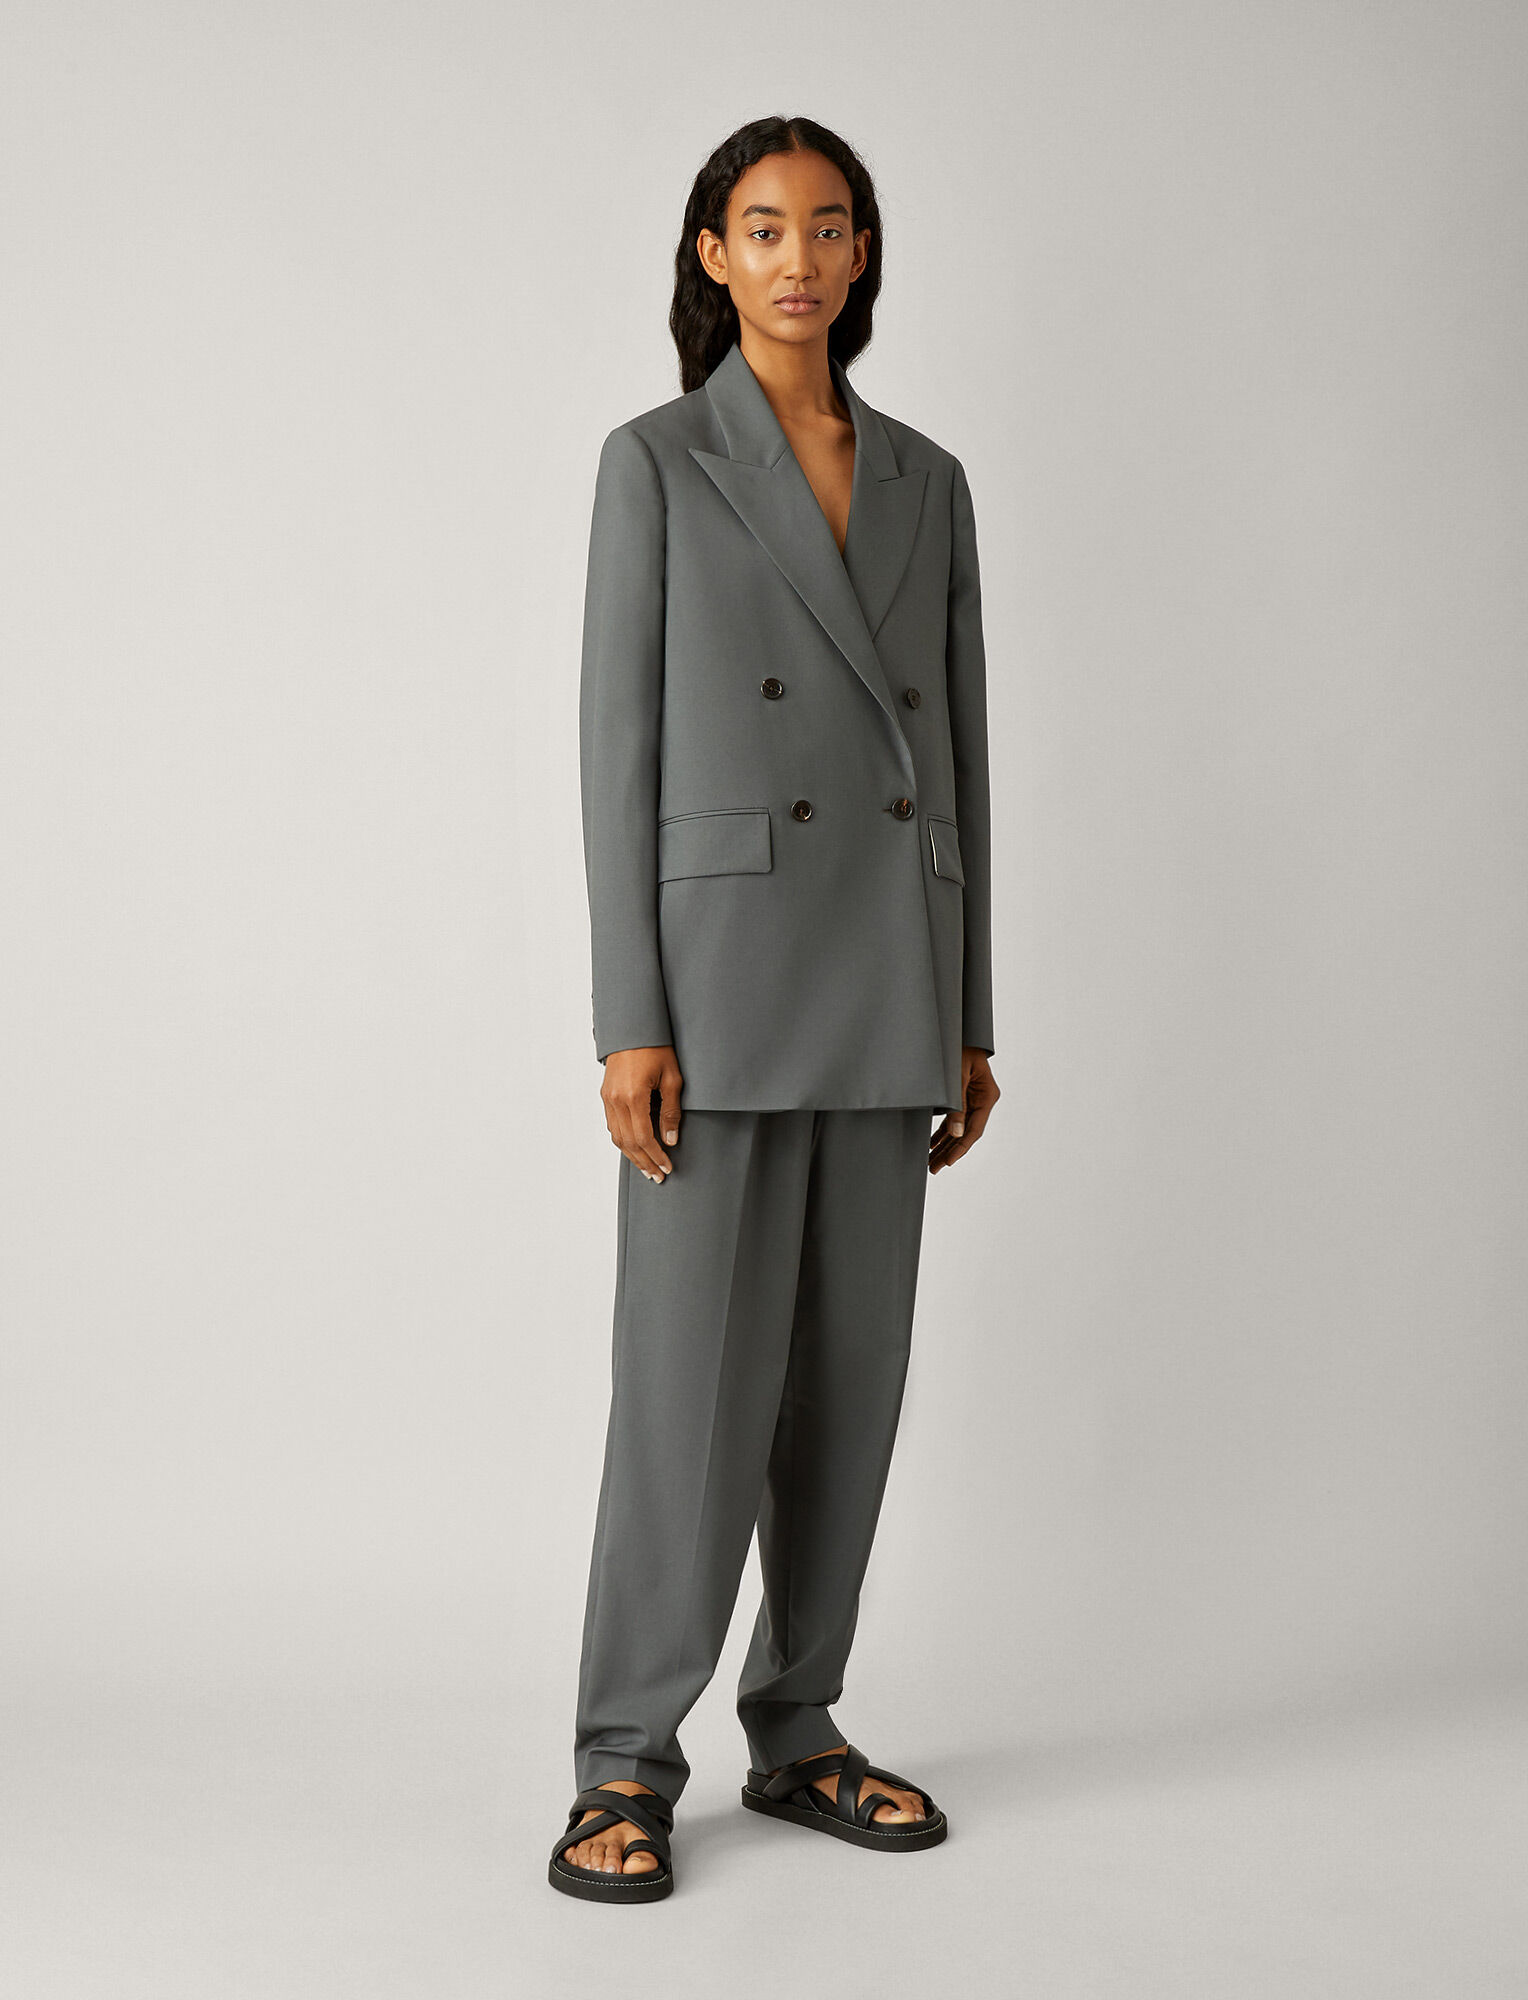 Joseph, Marshall Toile de Laine Jacket, in SLATE GREY